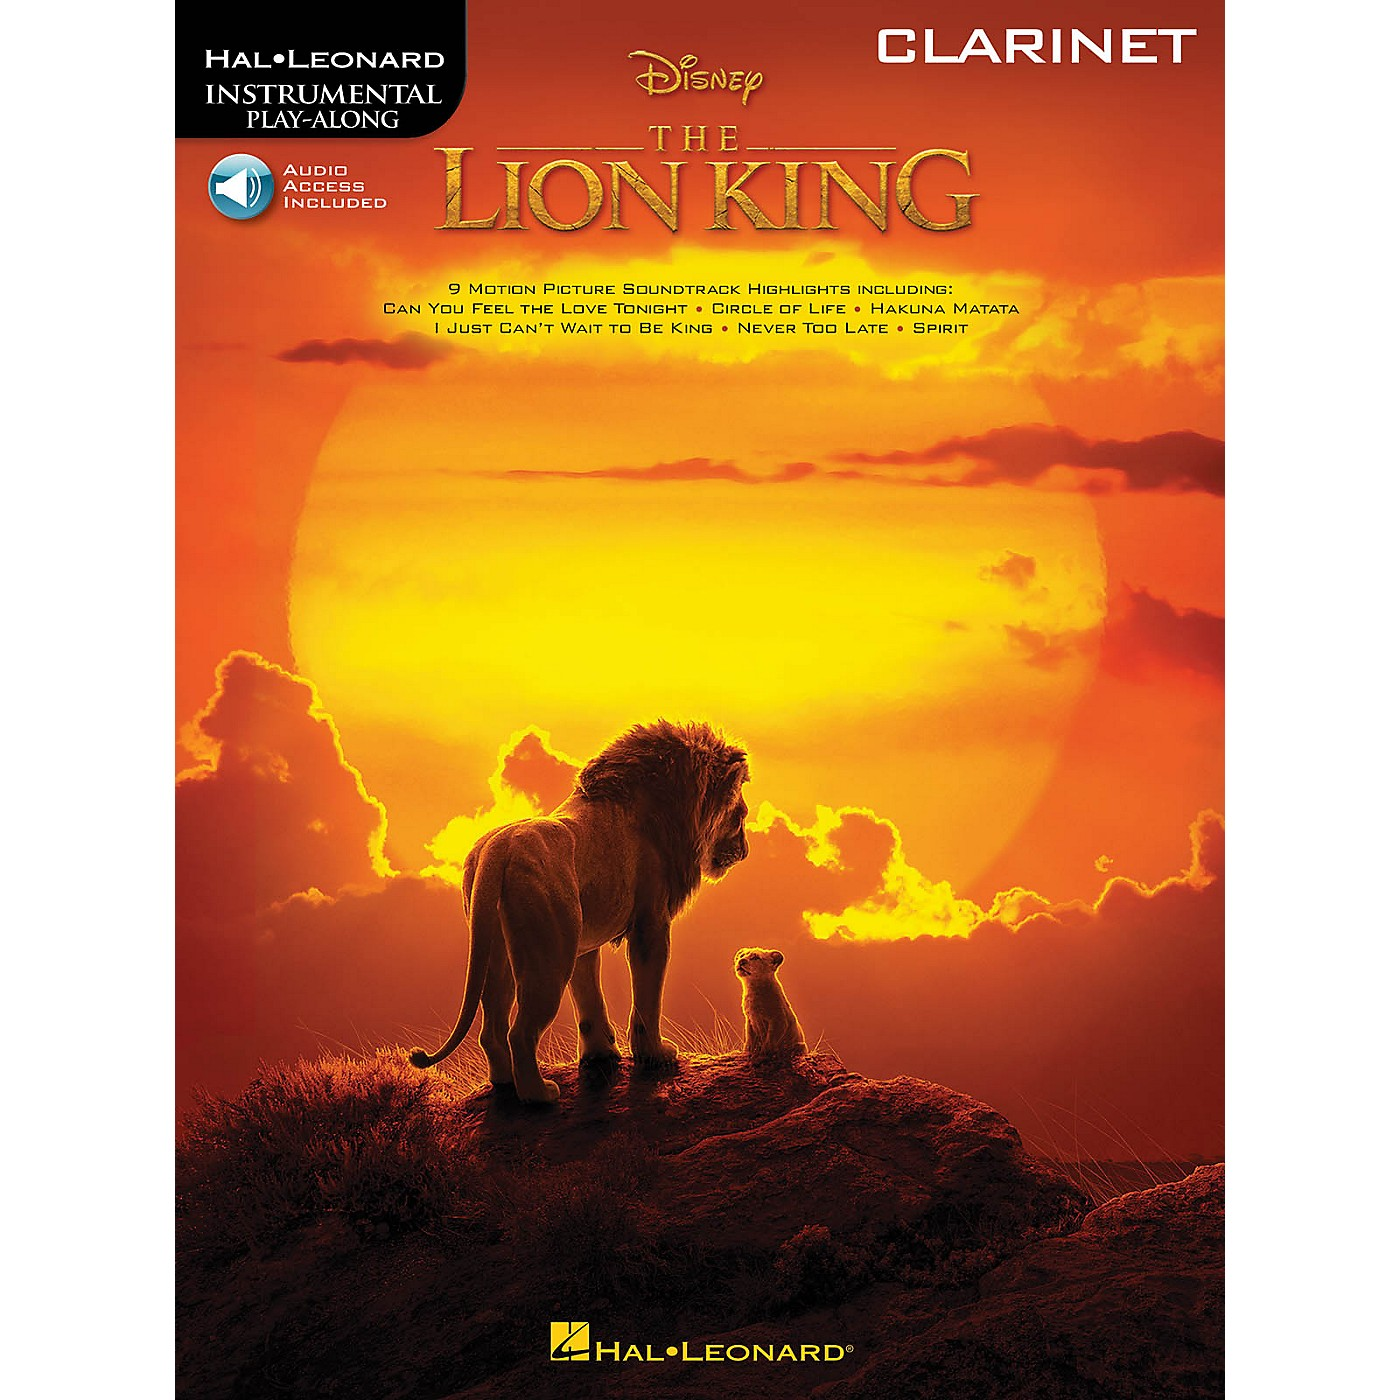 Hal Leonard The Lion King for Clarinet Instrumental Play-Along Book/Audio Online thumbnail